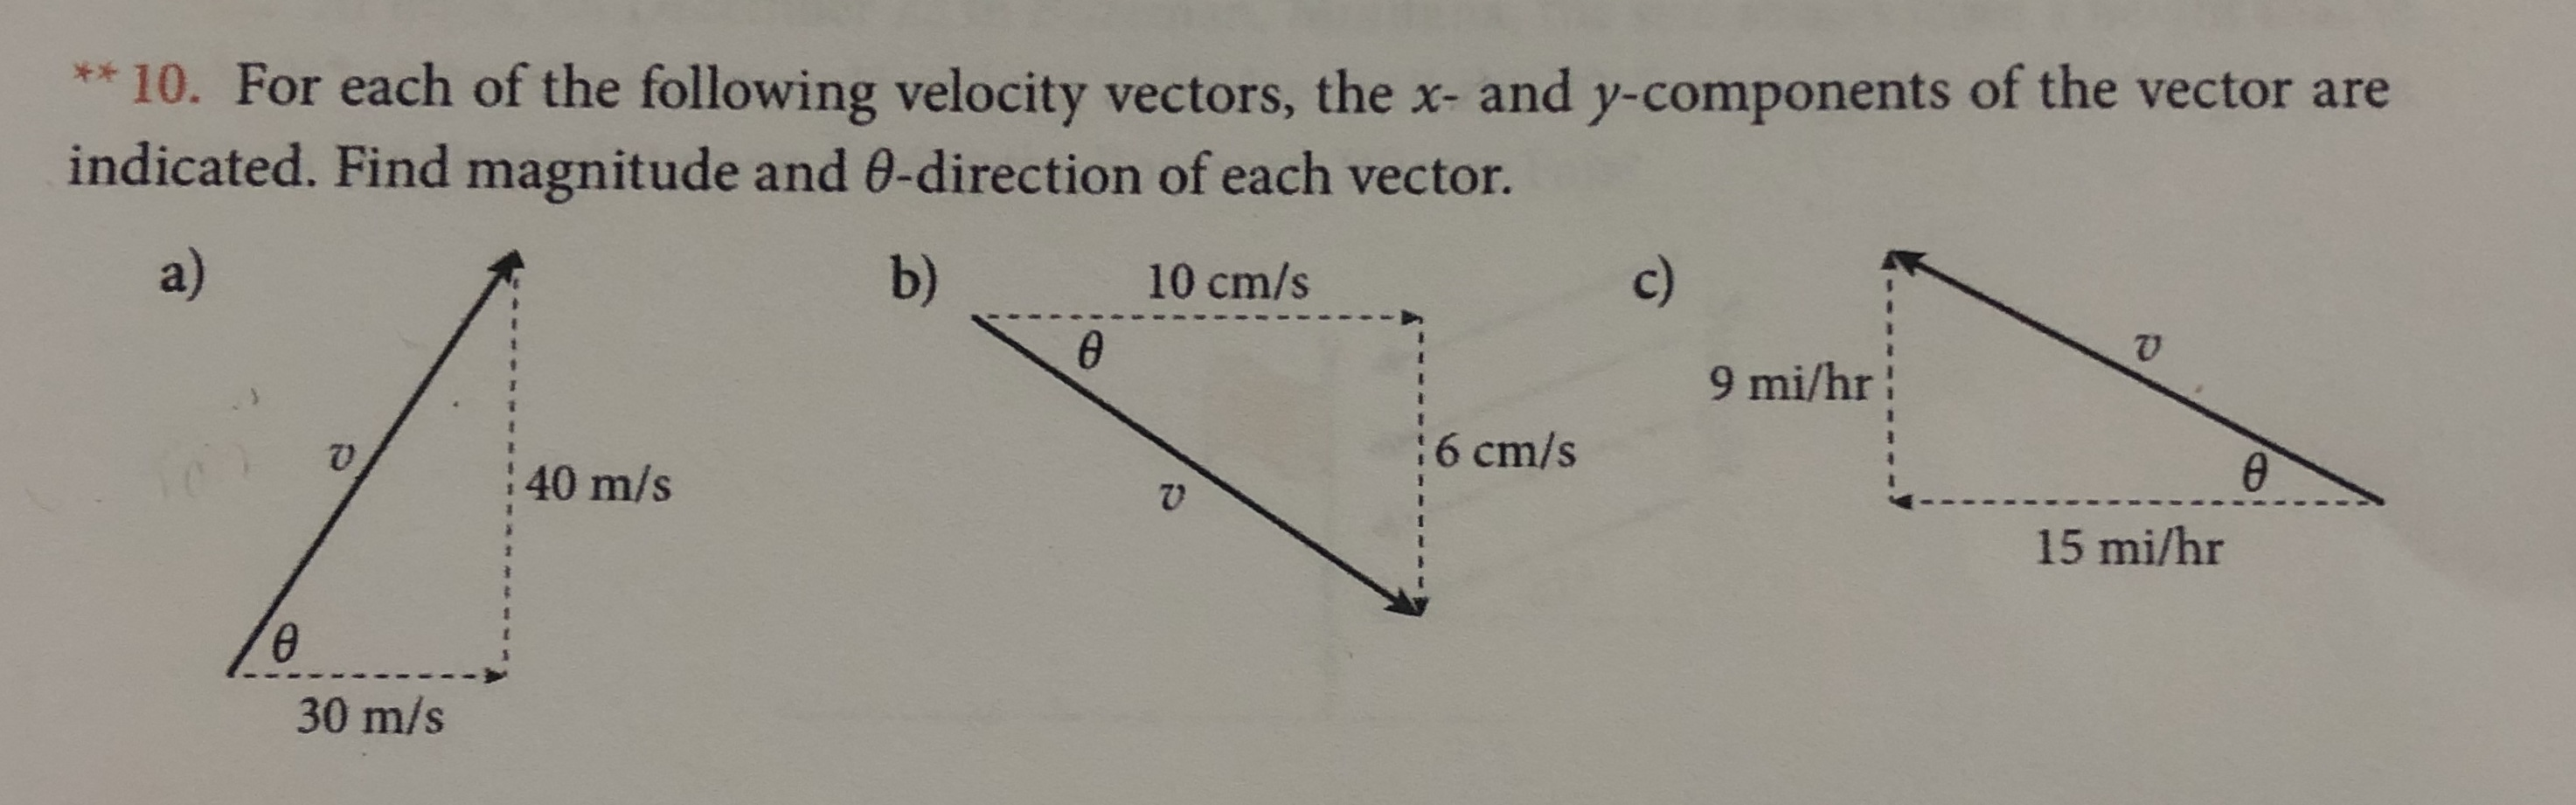 * 10. For each of the following velocity vectors, the x- and y-components of the vector are indicated. Find magnitude and 0-direction of each vector. a) b) c) 10 cm/s @ 9 mi/hr 6 cm/s 40 m/s 15 mi/hr 30 m/s